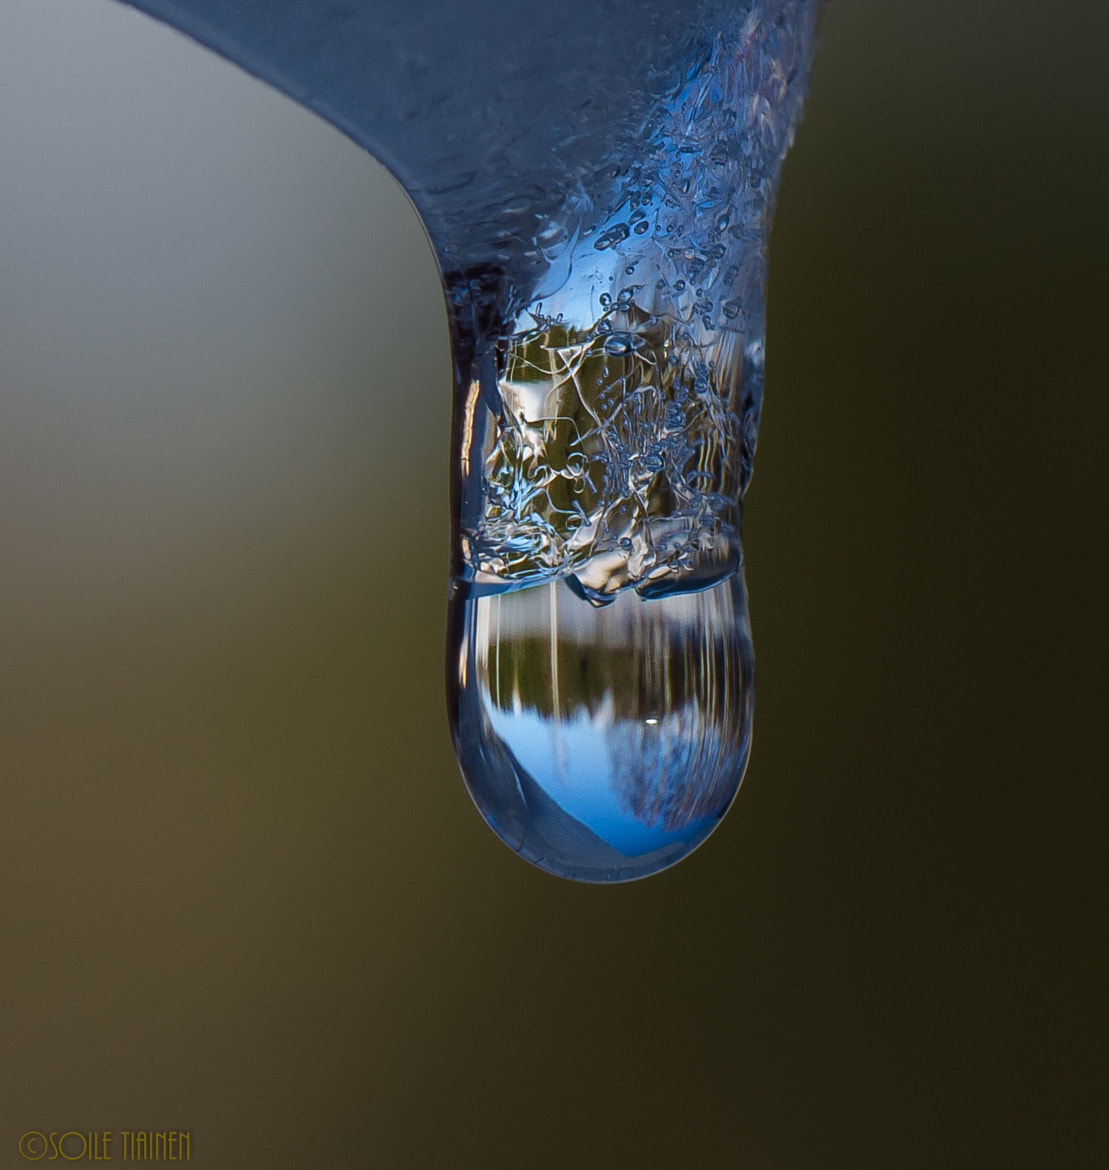 Photograph Droplet and ice=IceArt by Sole Tiainen on 500px